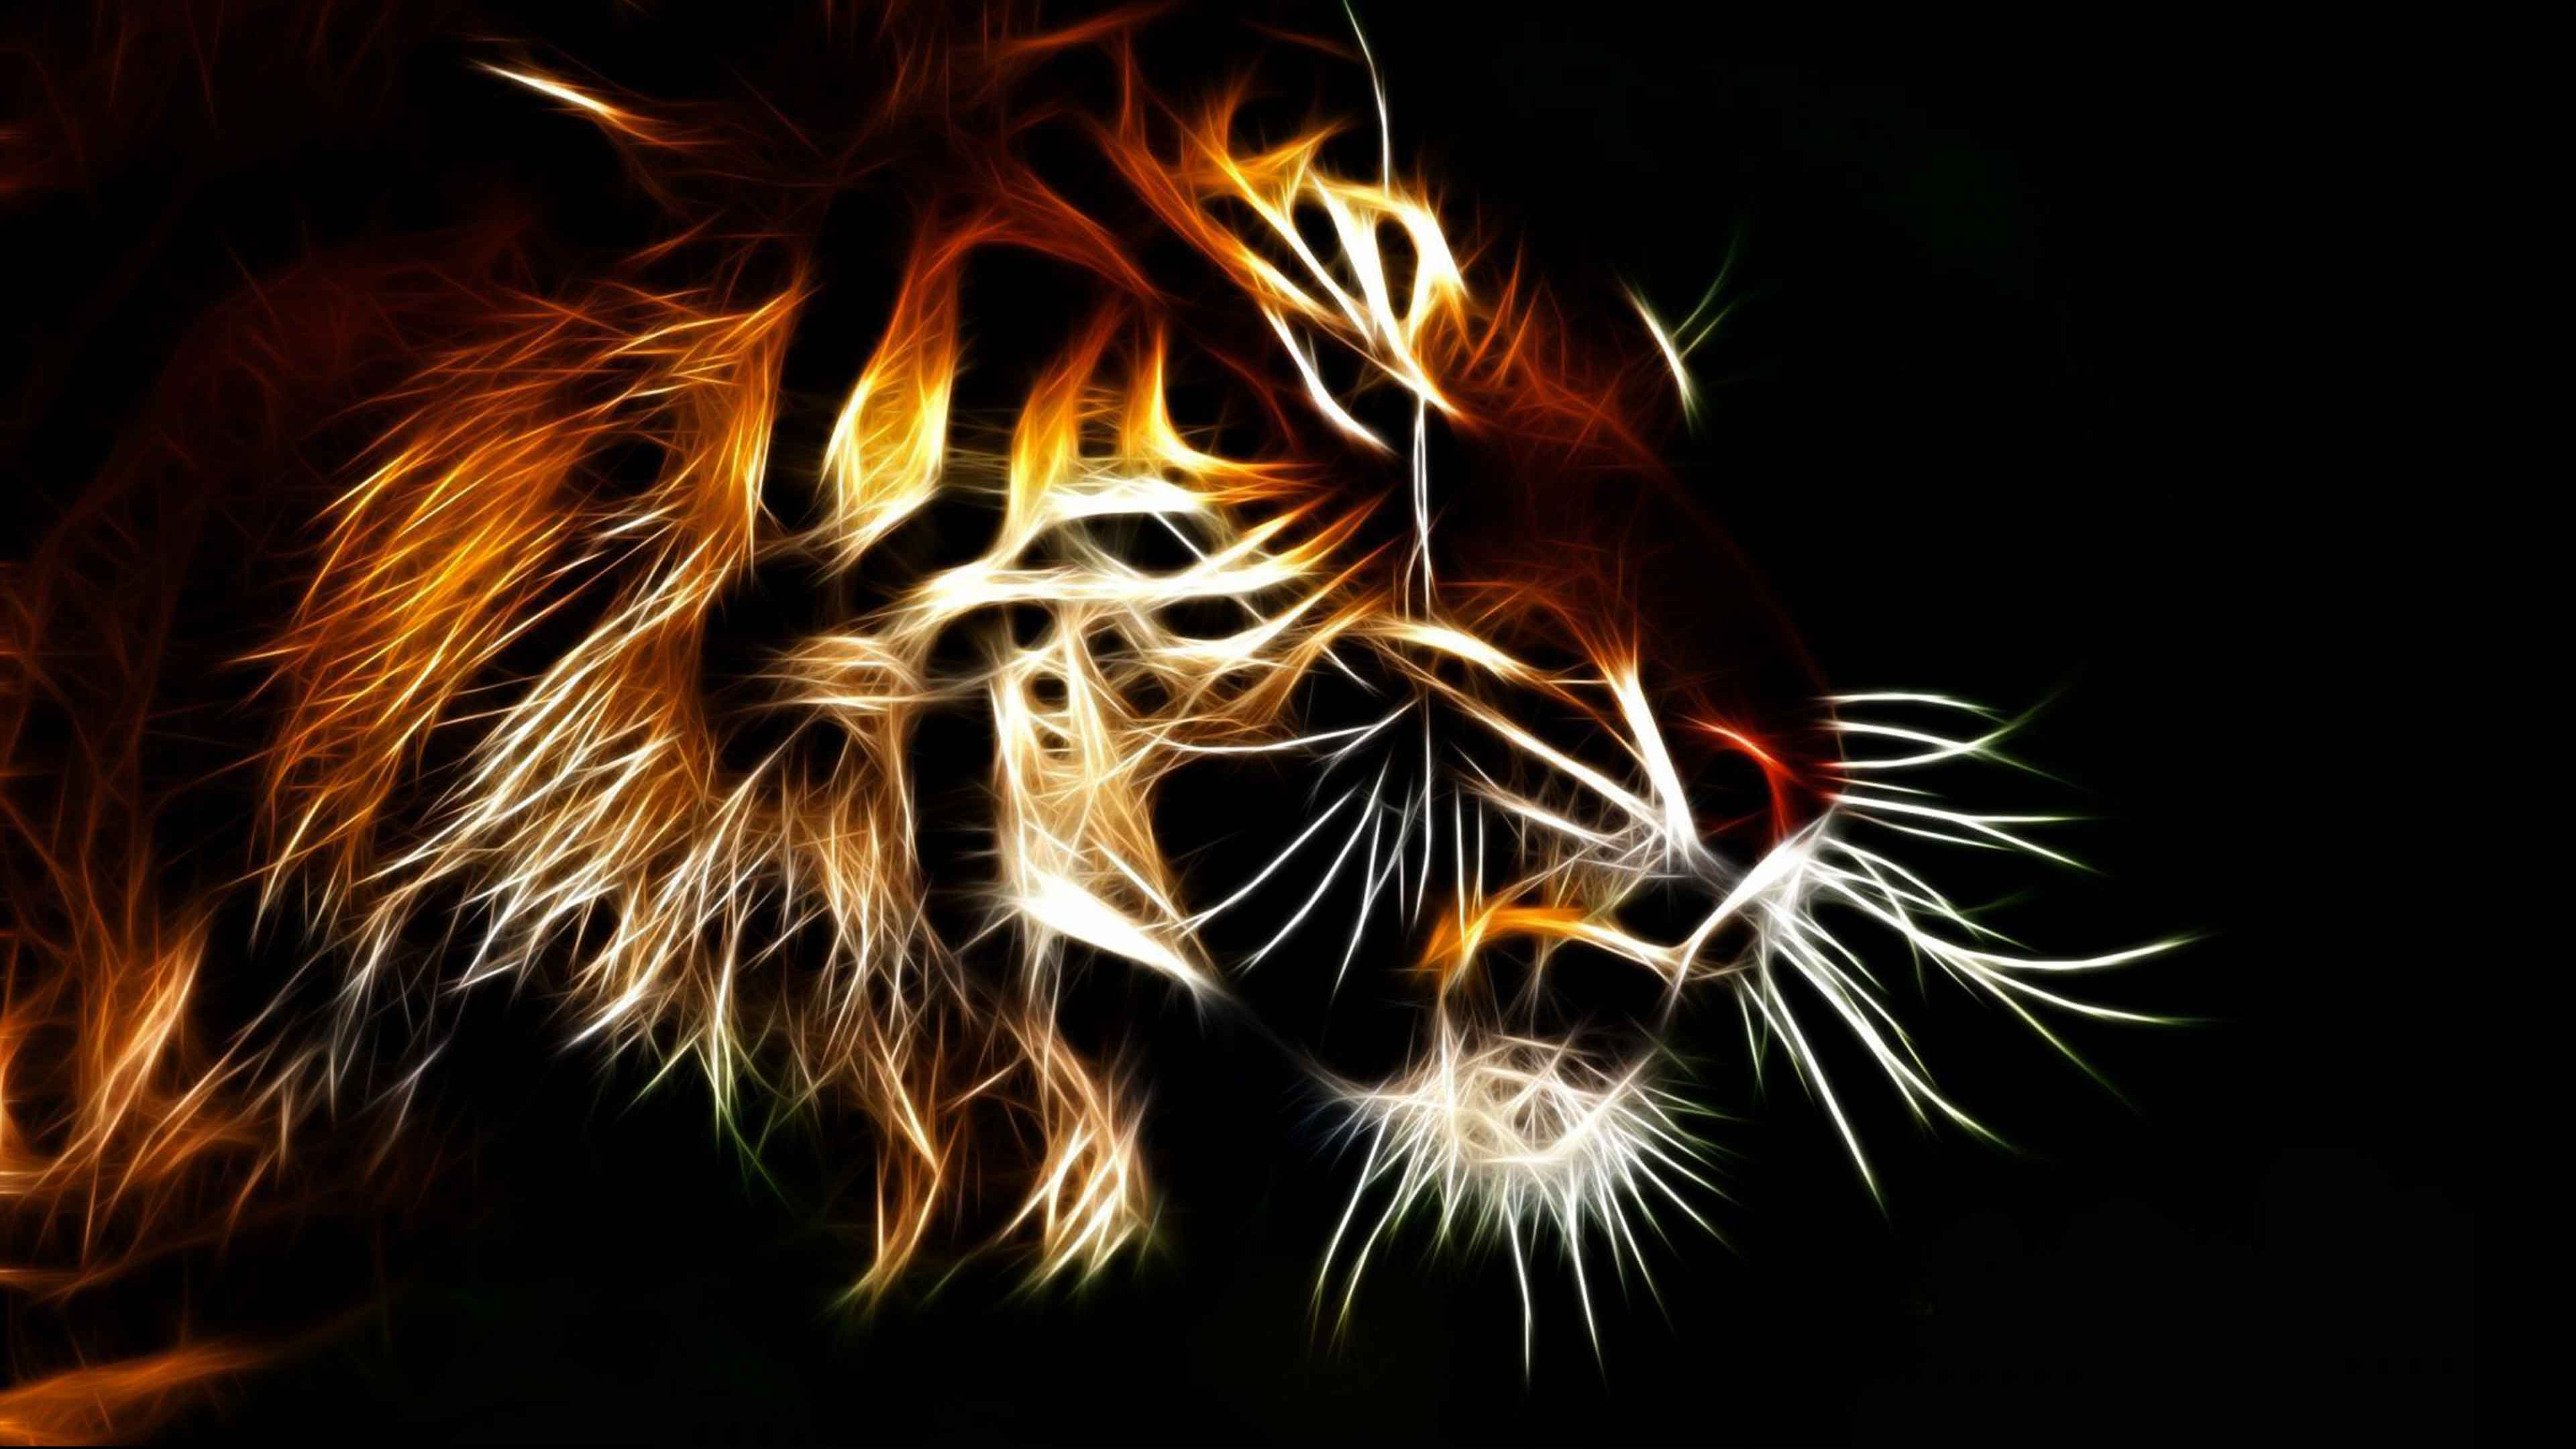 Abstract Tiger Hd Wallpapers Top Free Abstract Tiger Hd Backgrounds Wallpaperaccess